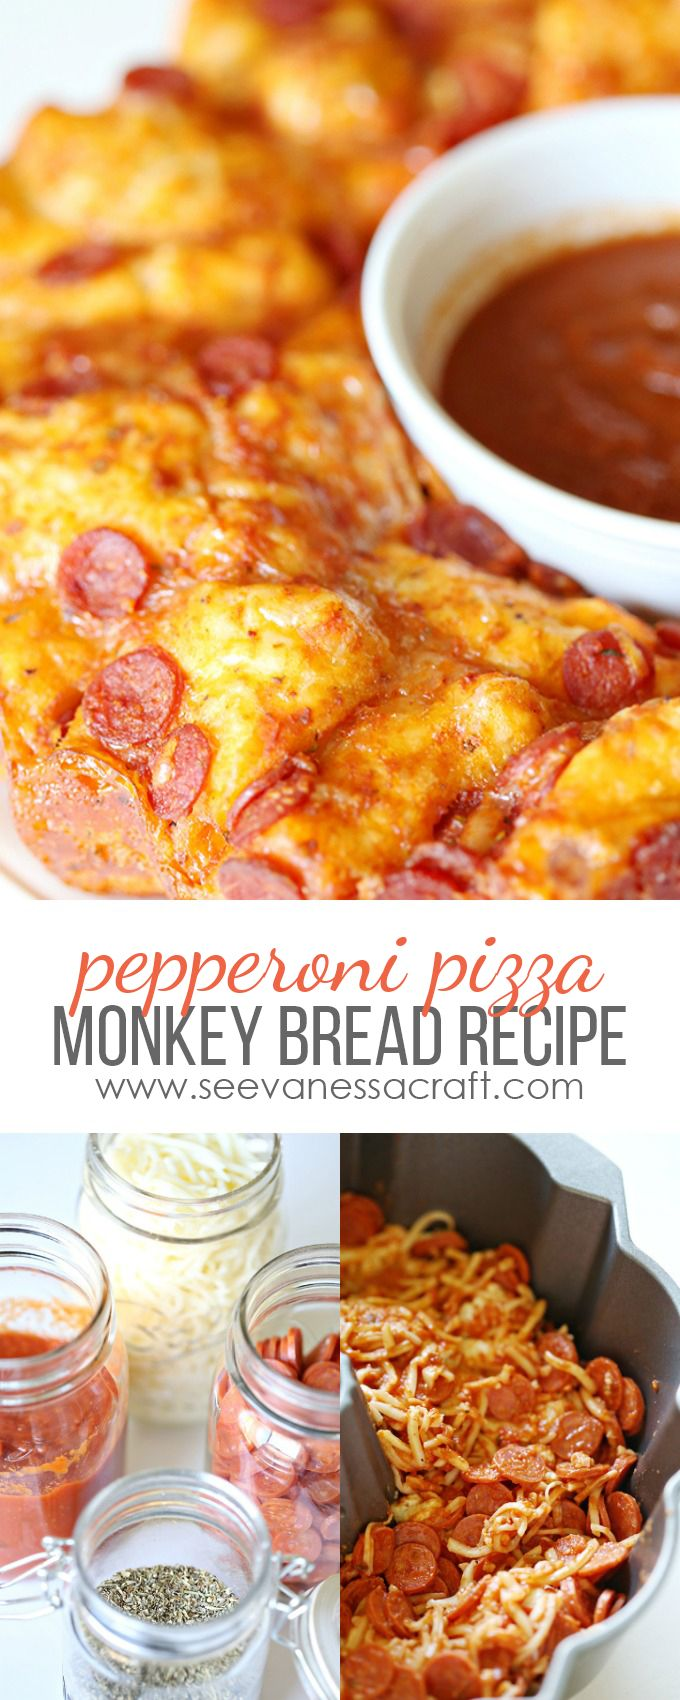 Easy Cheese & Pepperoni Pizza Monkey Bread Recipe